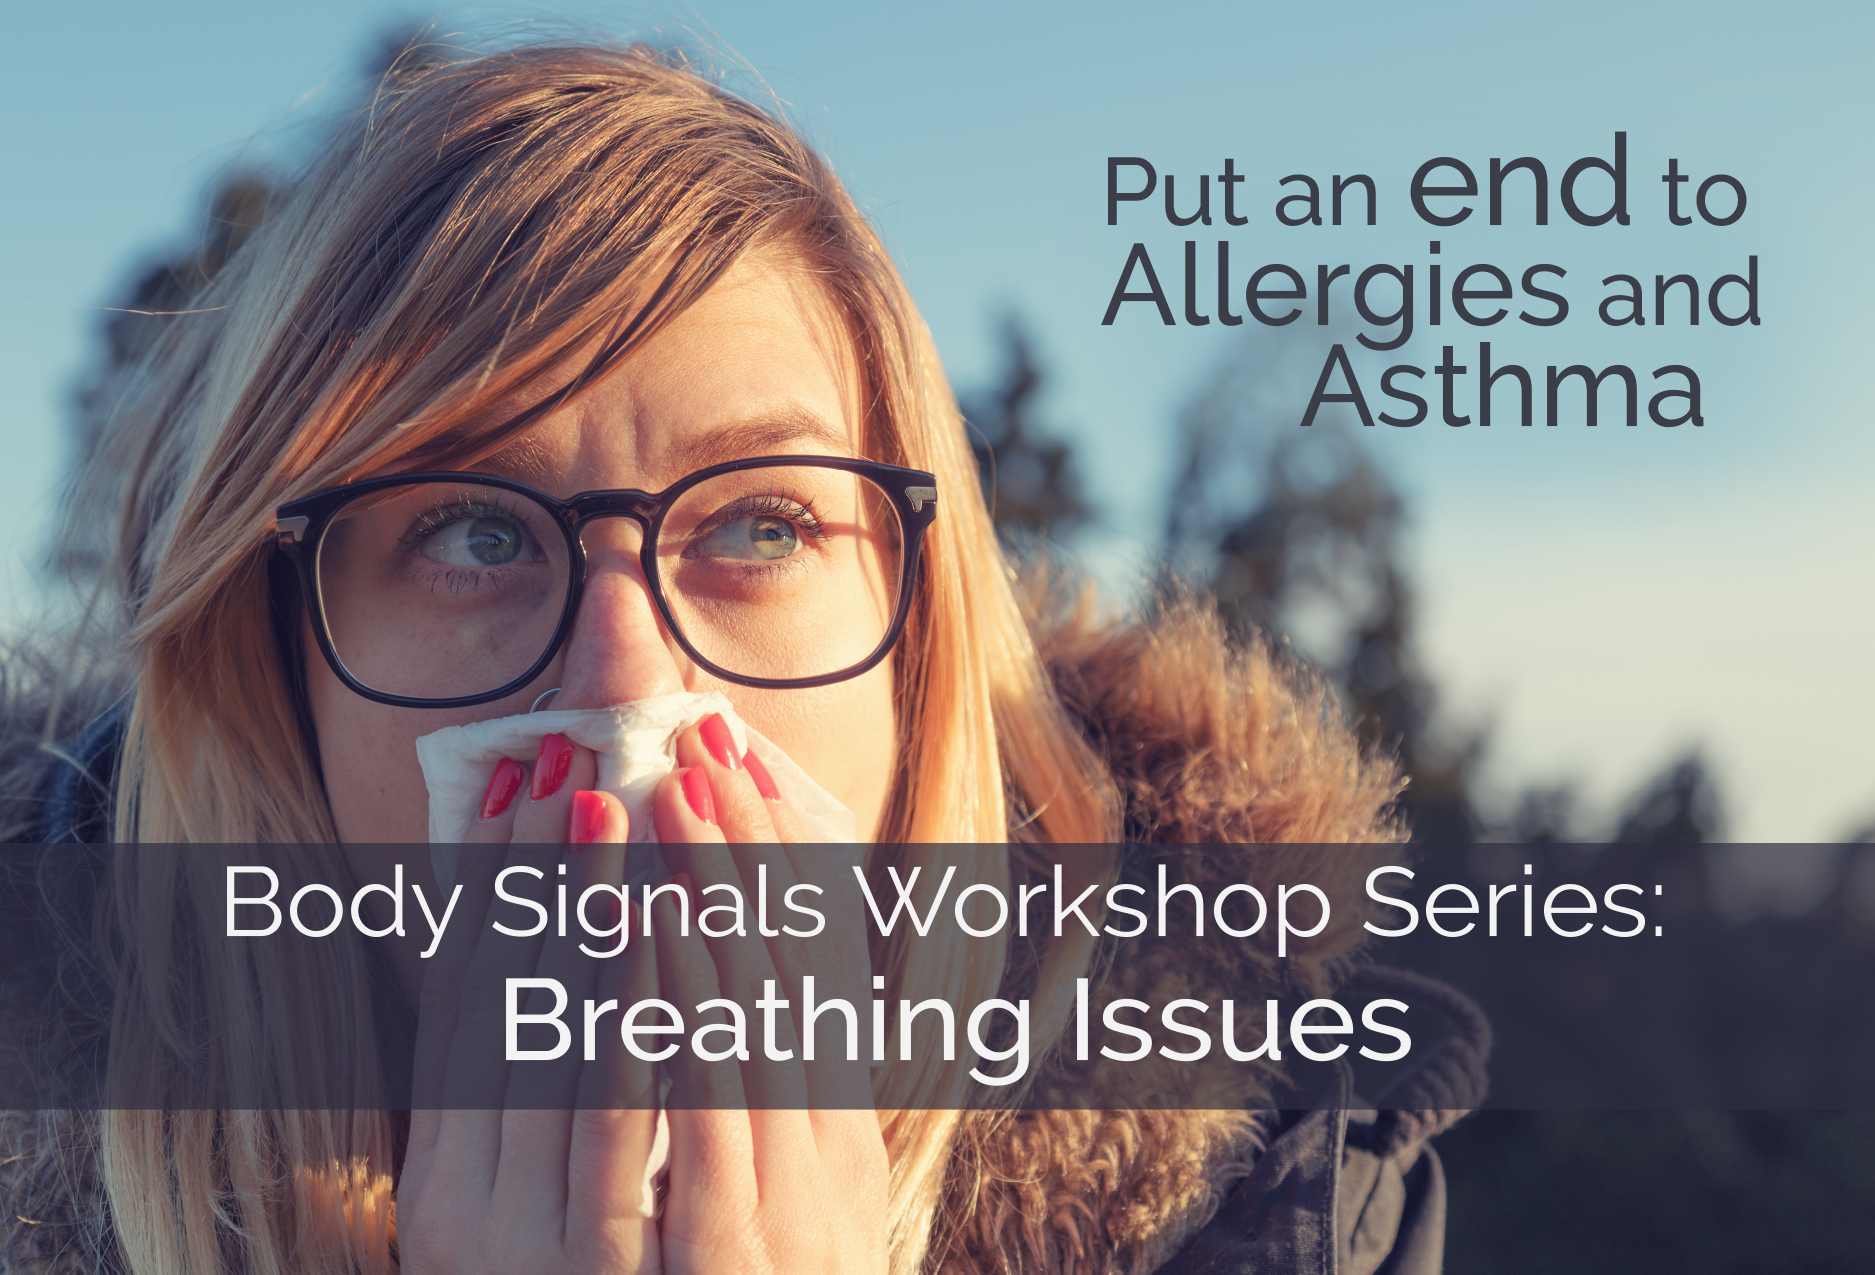 Workshop: Put an End to Allergies and Asthma